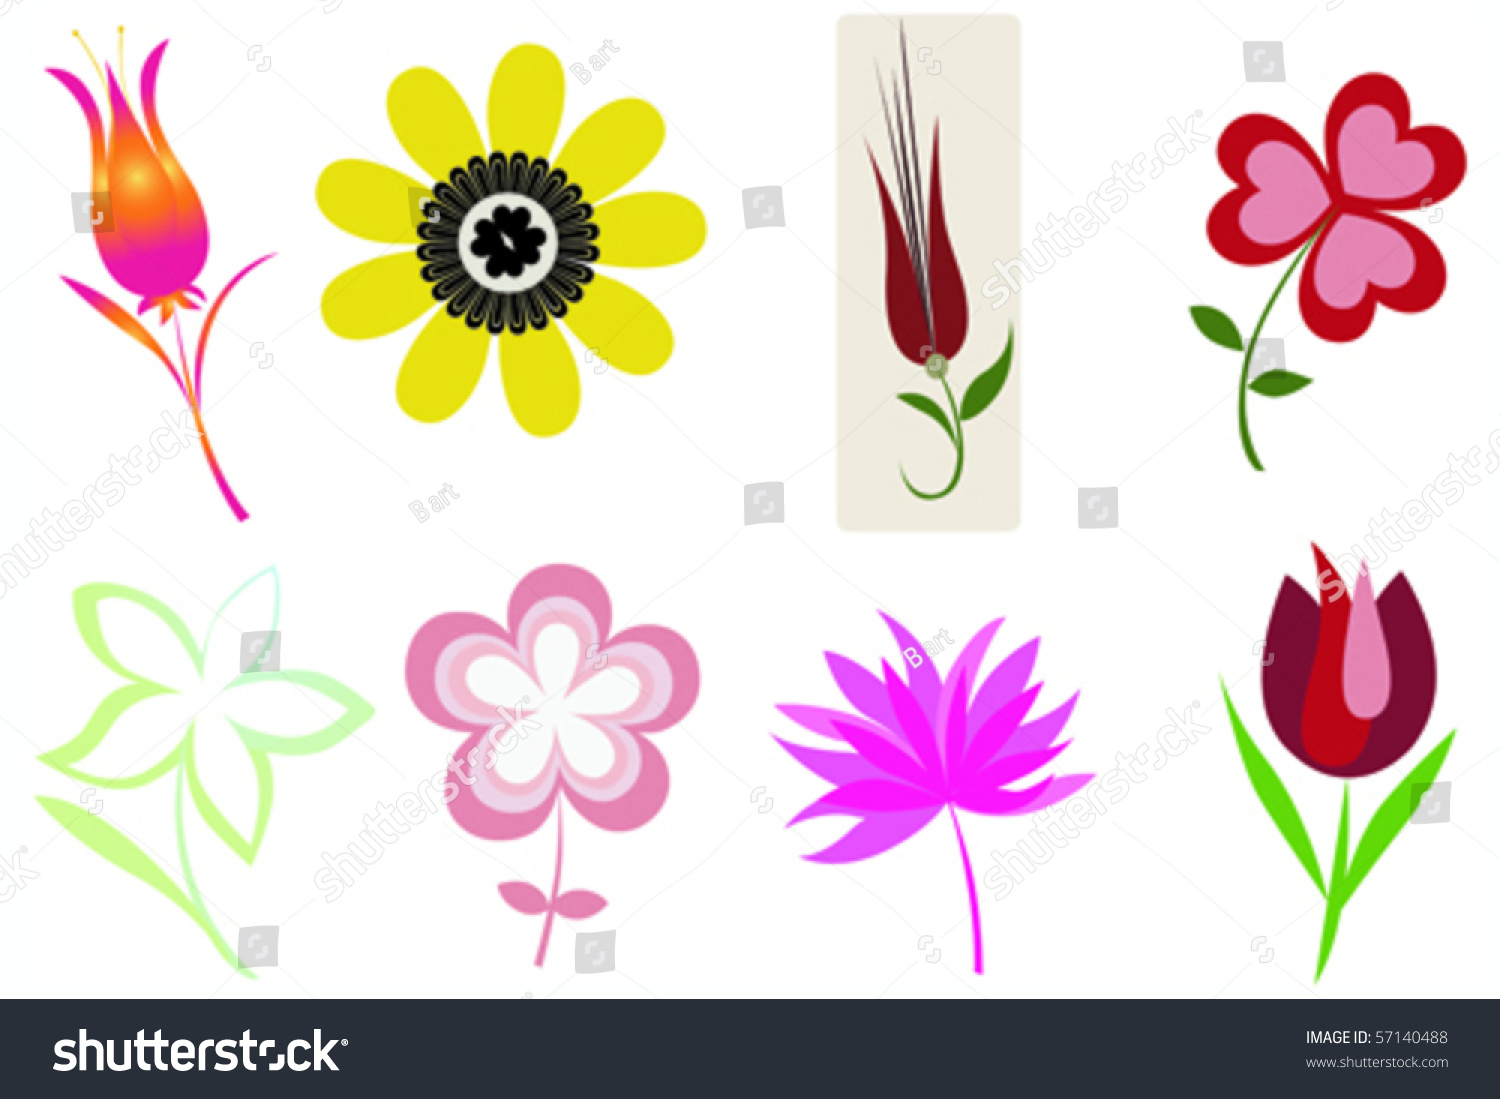 Symbols With Flowers